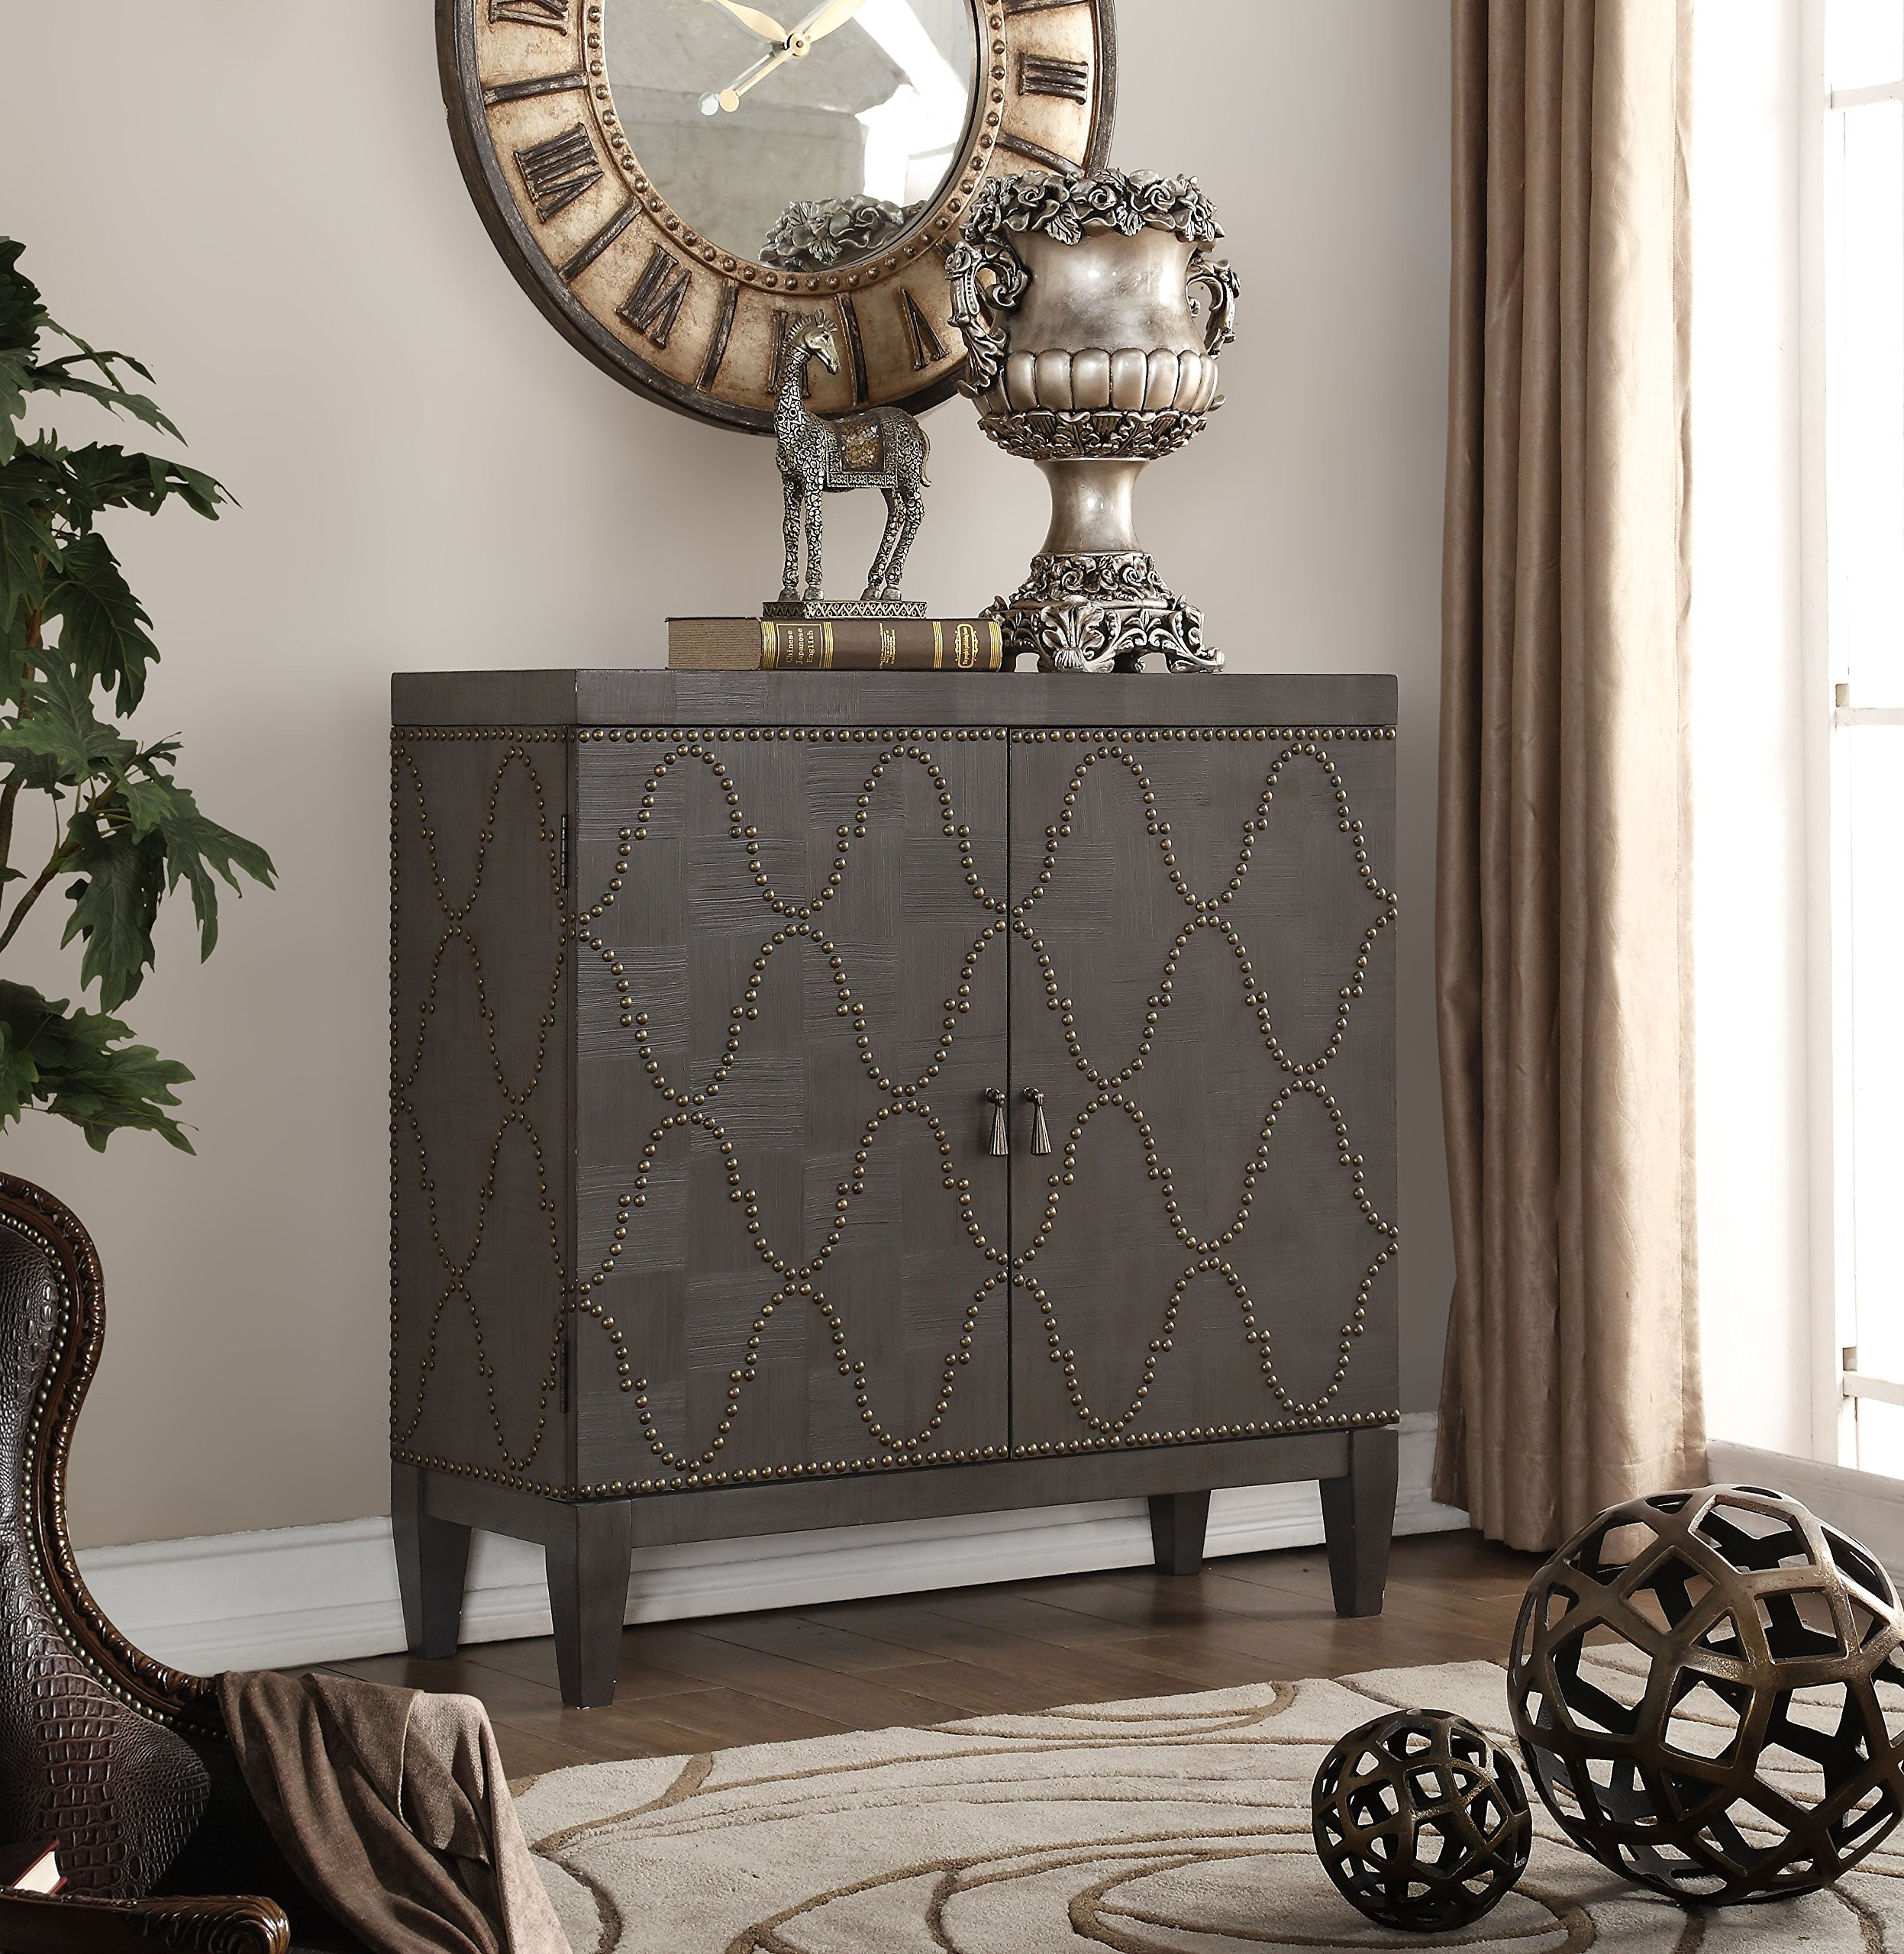 ACME Furniture 90298 Cherie Console Table, Antique Black by Acme Furniture (Image #6)